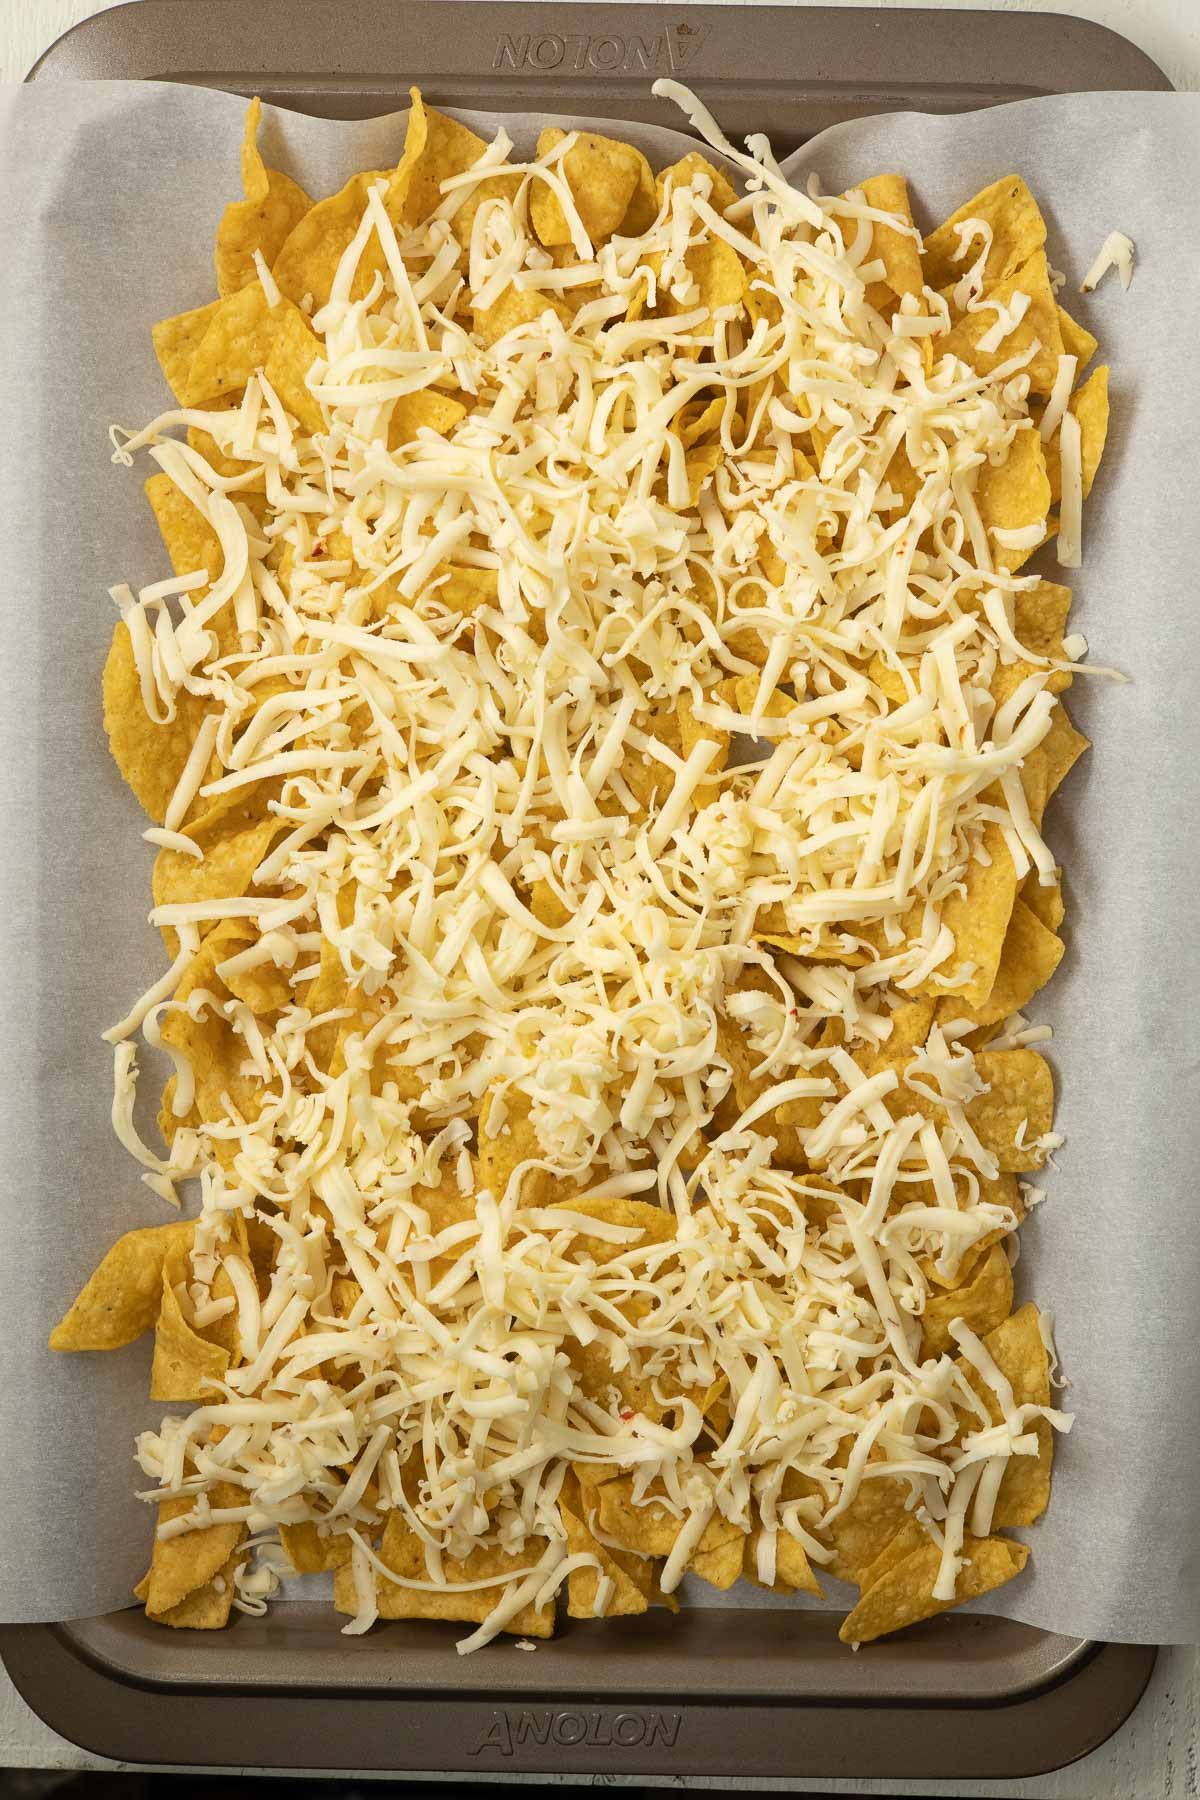 Sheet pan of tortilla chips topped with grated cheese.